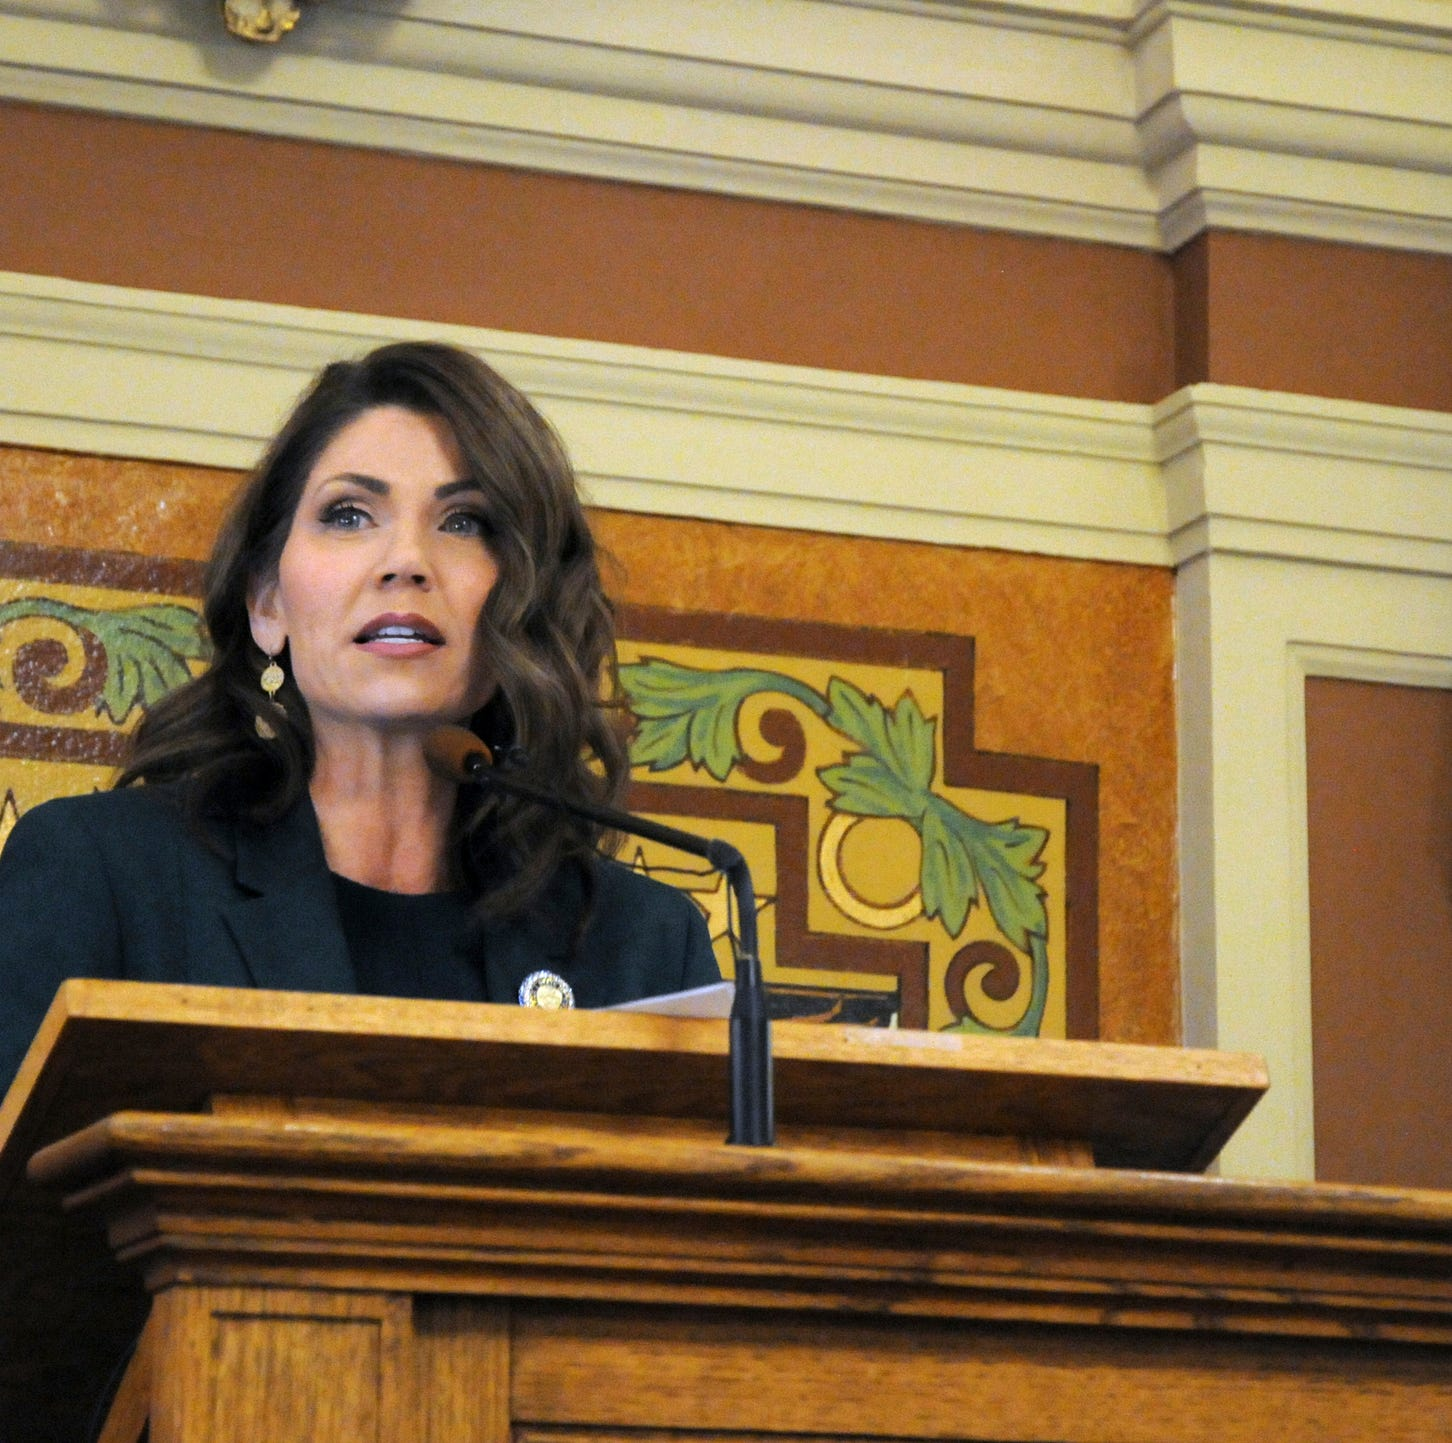 Noem committed to fiscal responsibility in first budget address as governor